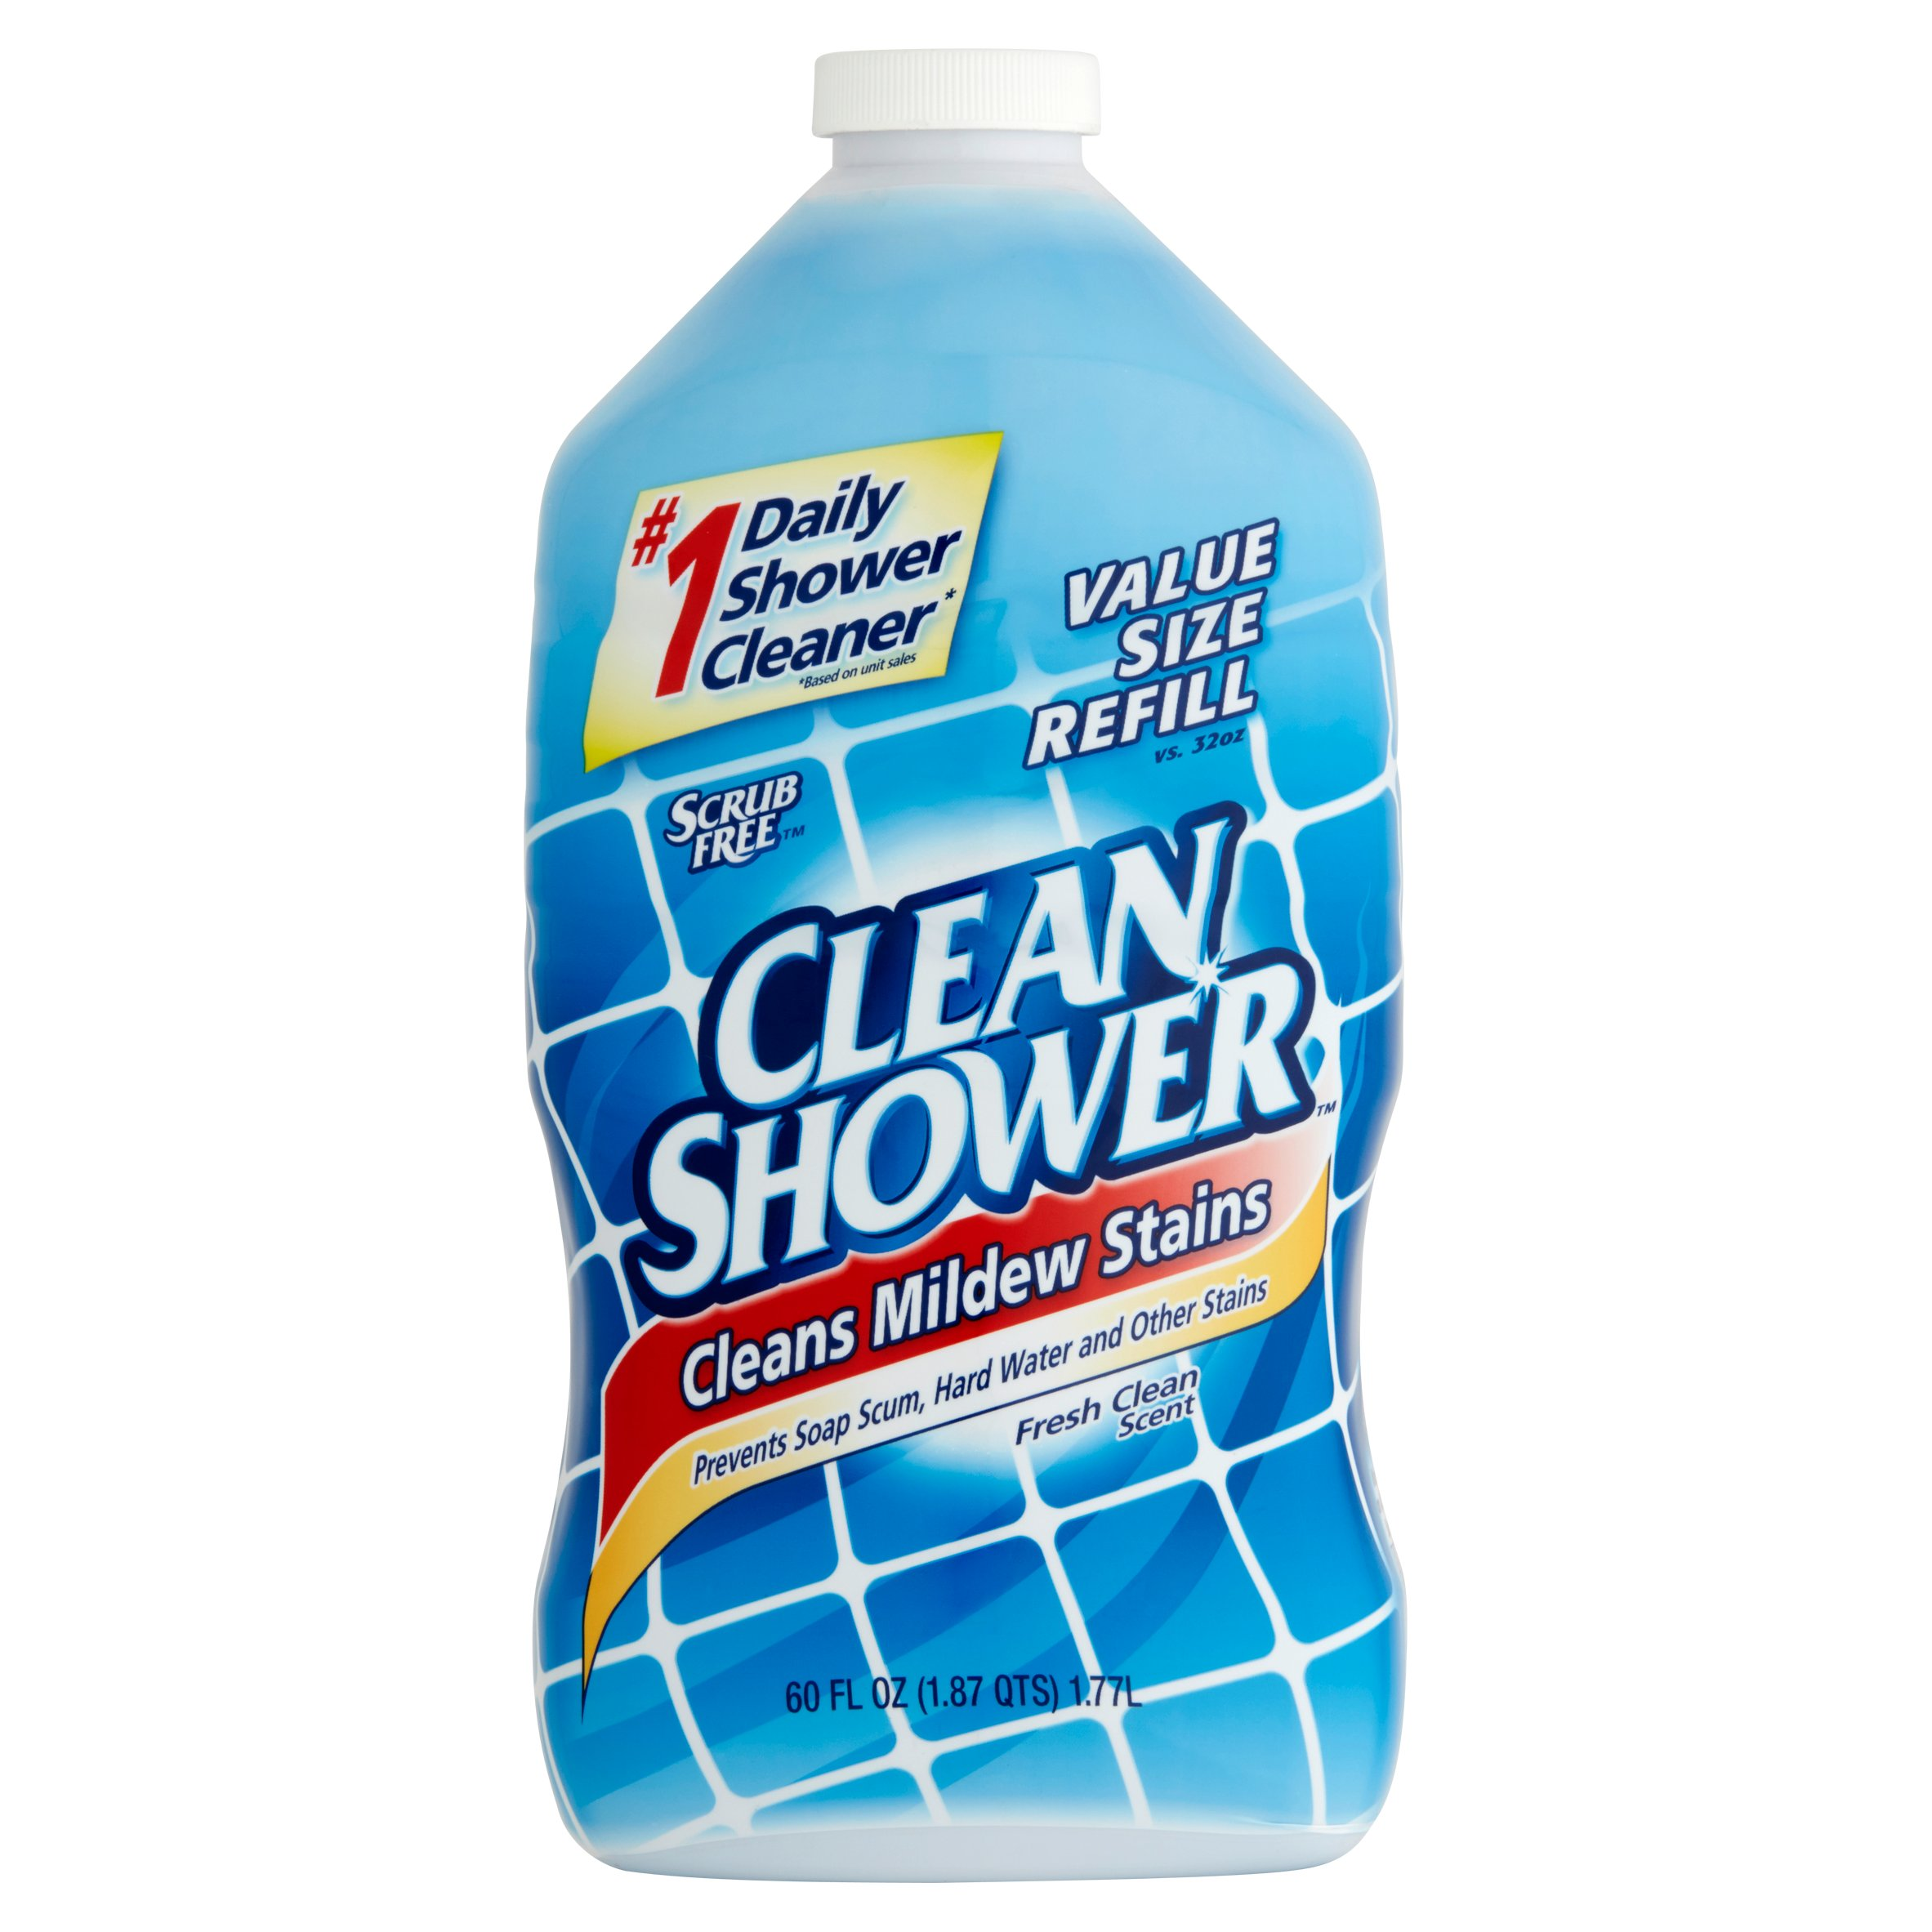 Marvelous Clean Shower Daily Shower Cleaner Refill, 60 Fl Oz